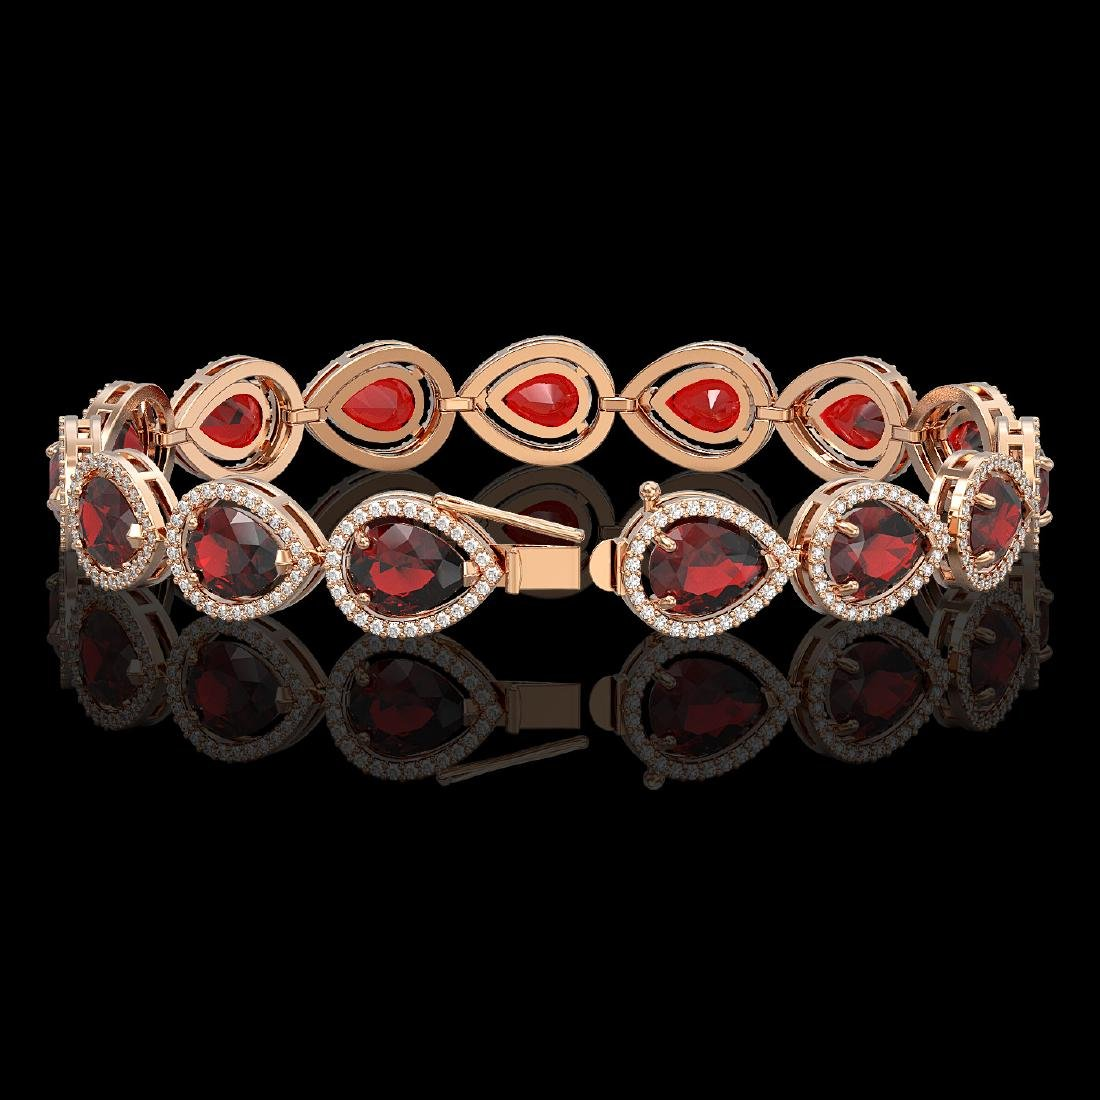 17.45 CTW Garnet & Diamond Halo Bracelet 10K Rose Gold - 2